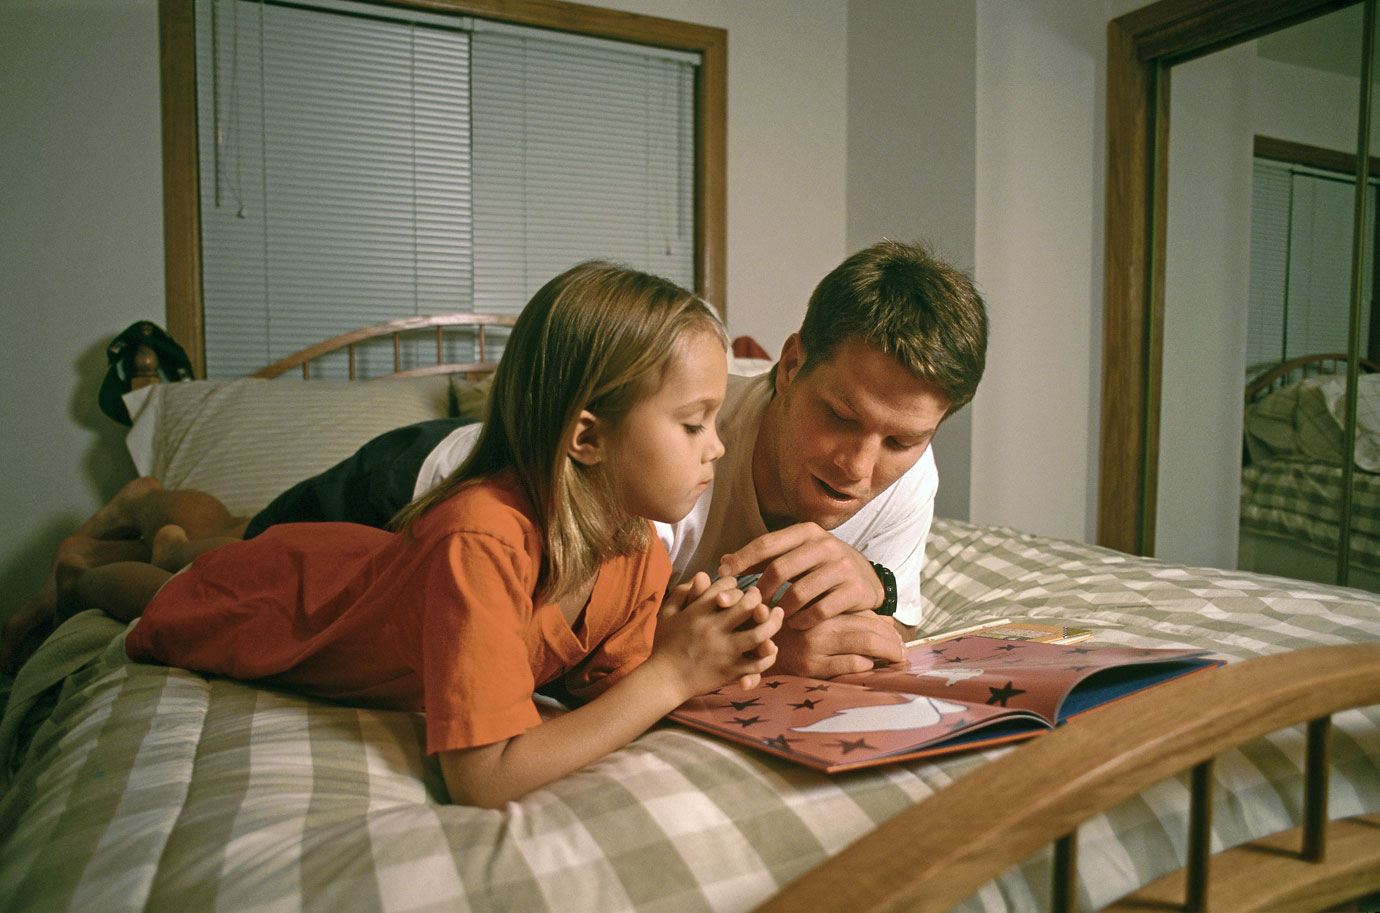 Favre snuggles into bed alongside daughter Brittany, reading a Berenstain Bears story.